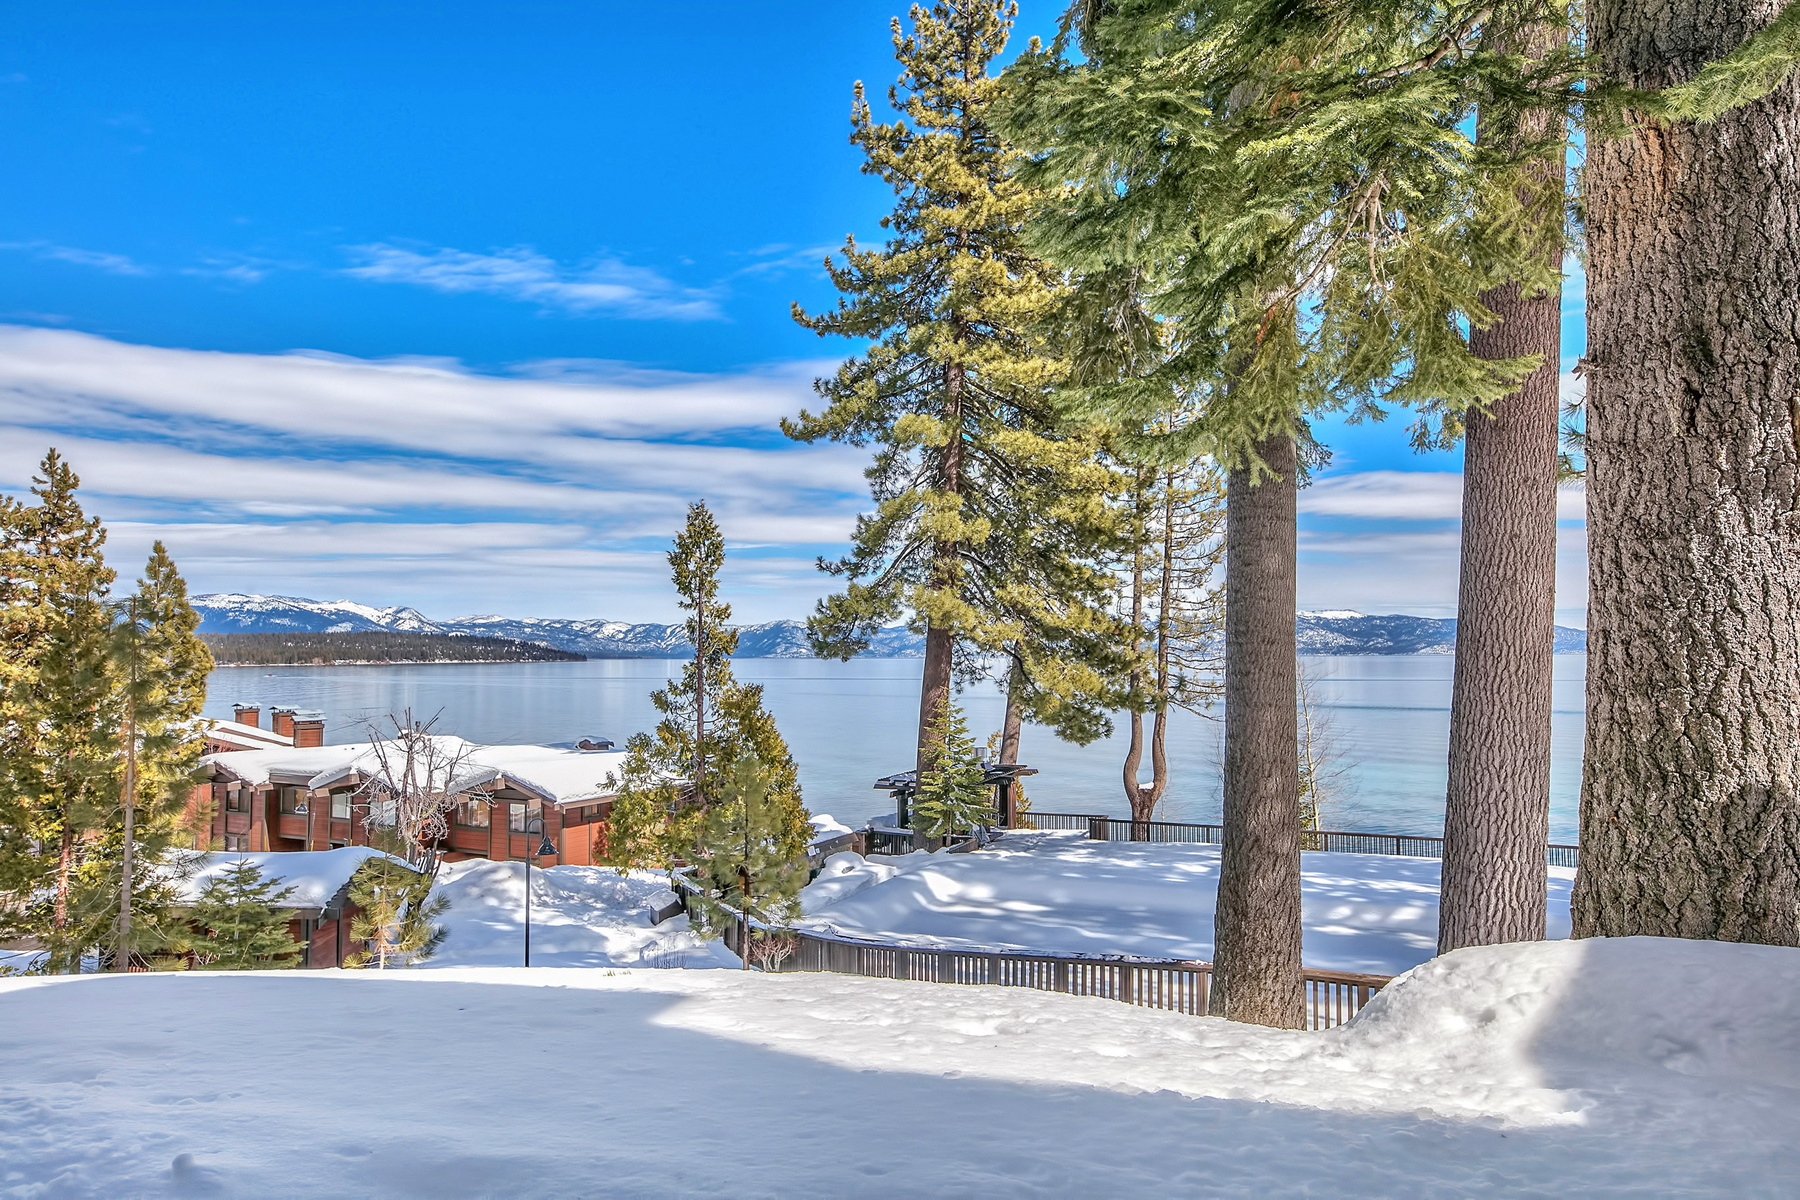 Condominium for Sale at 300 West Lake Boulevard #41, Tahoe City, CA Tahoe City, California, 96145 Lake Tahoe, United States